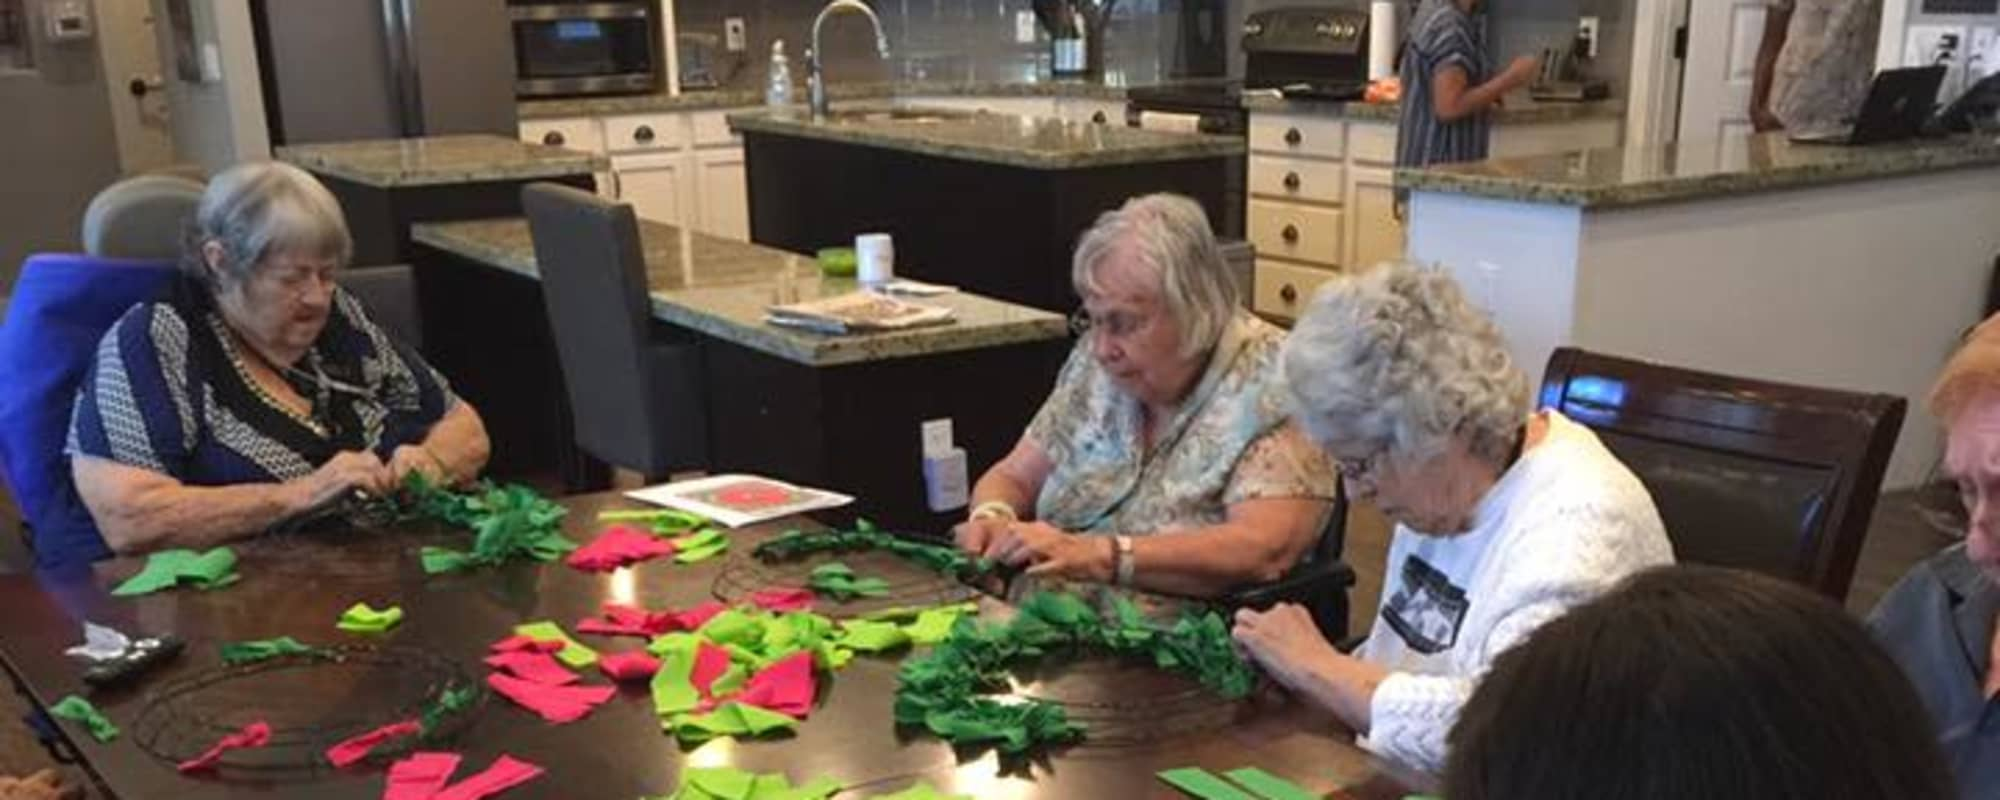 Seniors doing arts and crafts at Hacienda Del Rey in Litchfield Park, Arizona